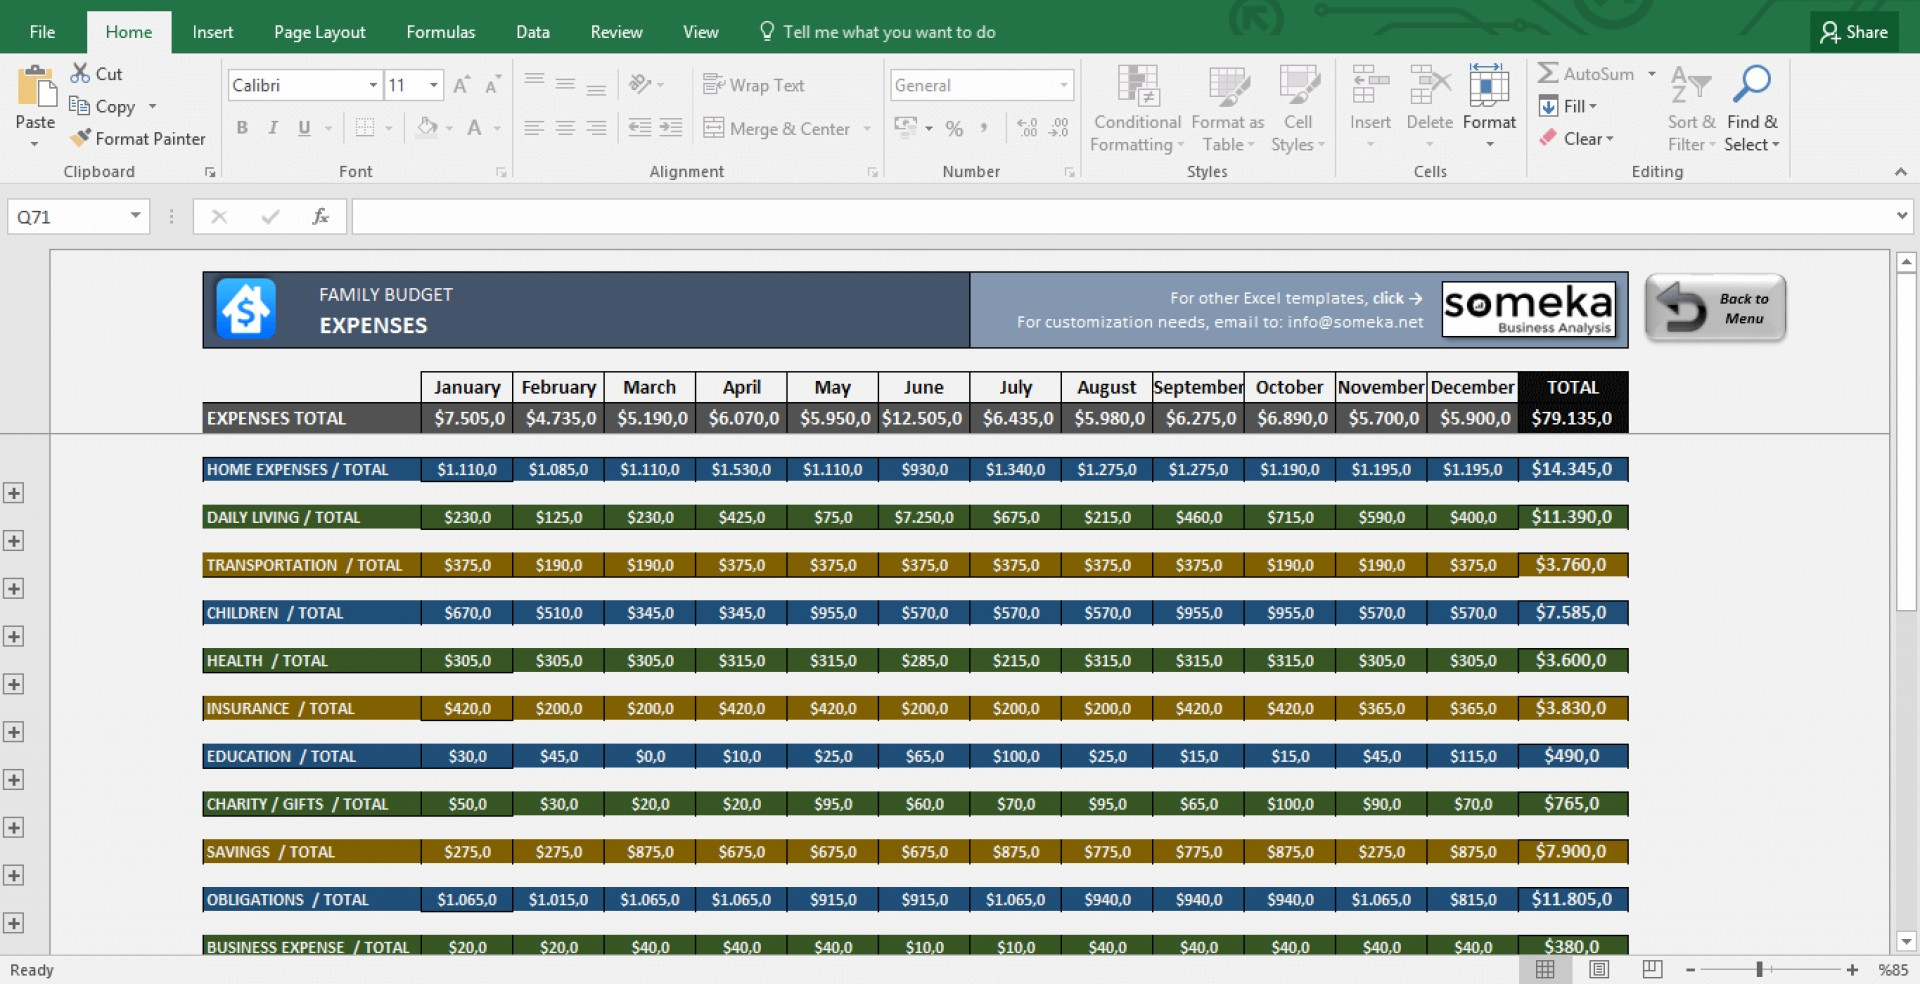 Home Budget Spreadsheet Excel Free Intended For 022 Template Ideas Free Home Budget Spreadsheet Uk Personal